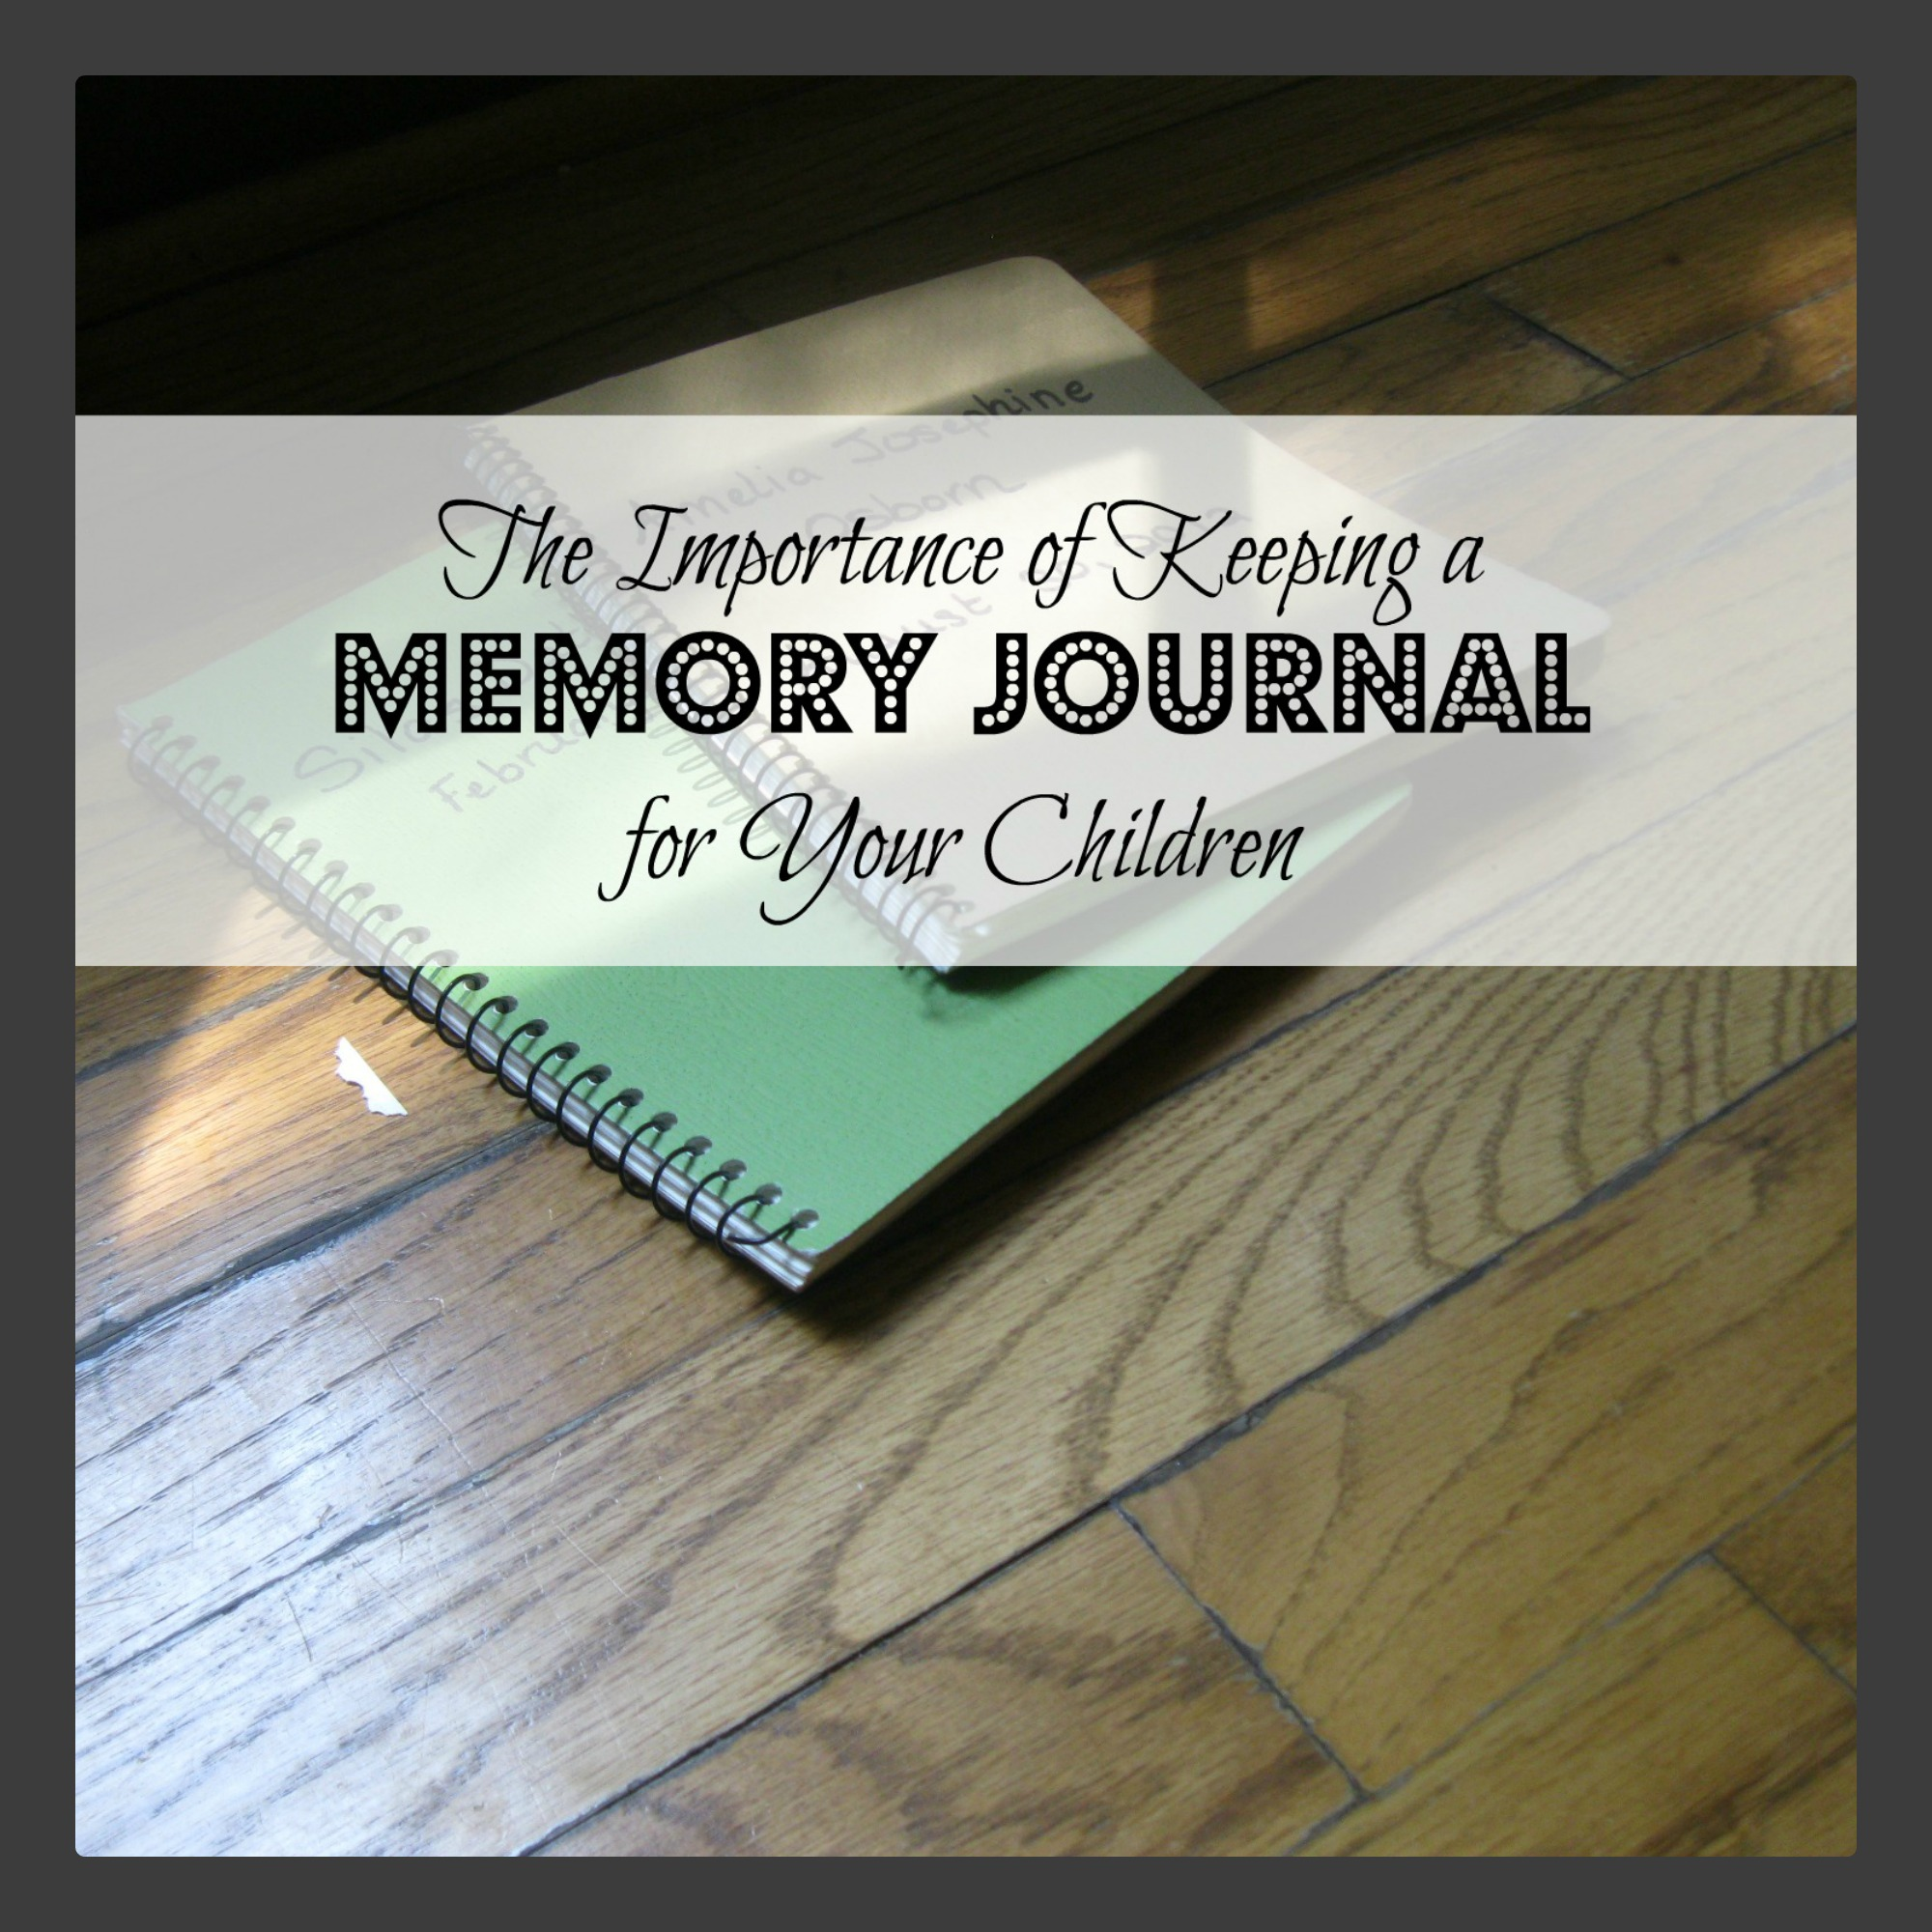 Keeping a Memory Journal for Your Children